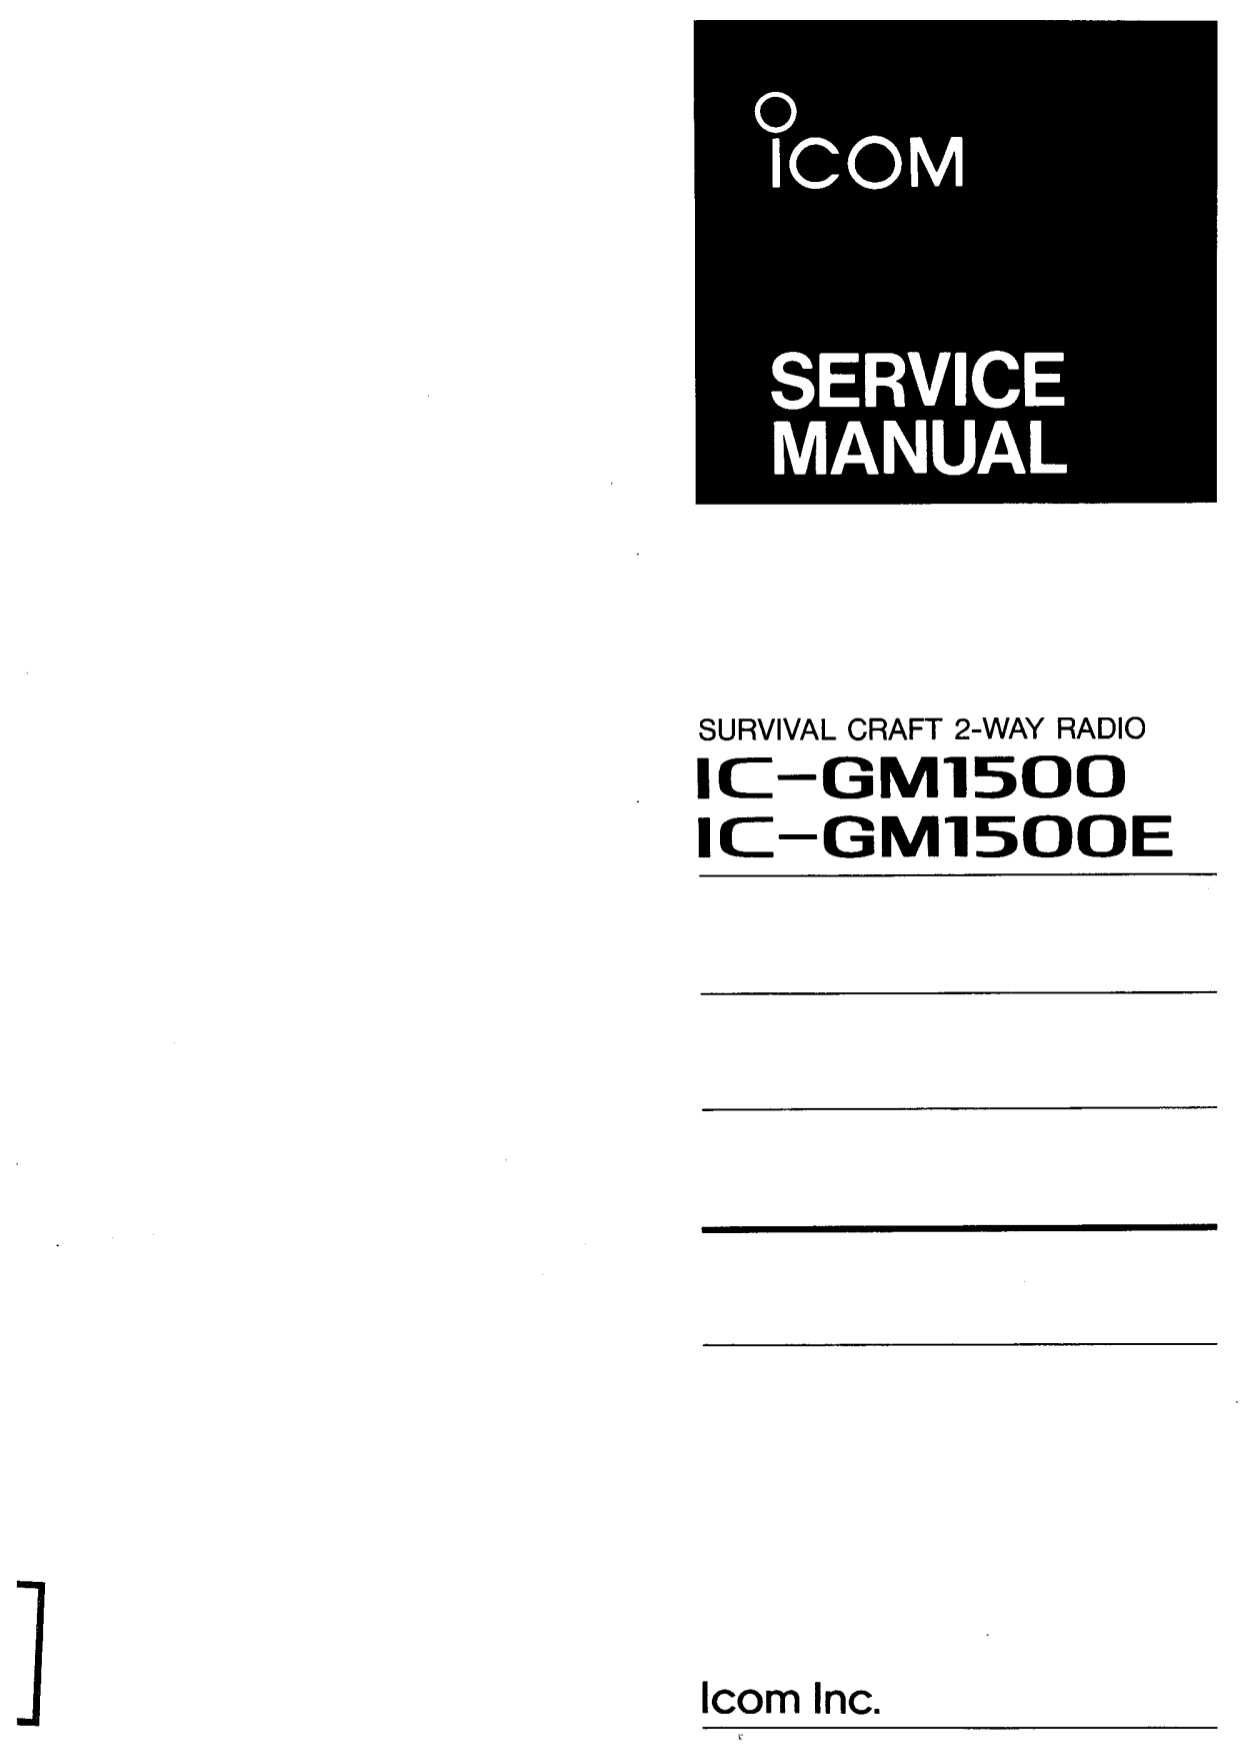 Download free pdf for ICOM IC-GM1500E 2-way Radio manual